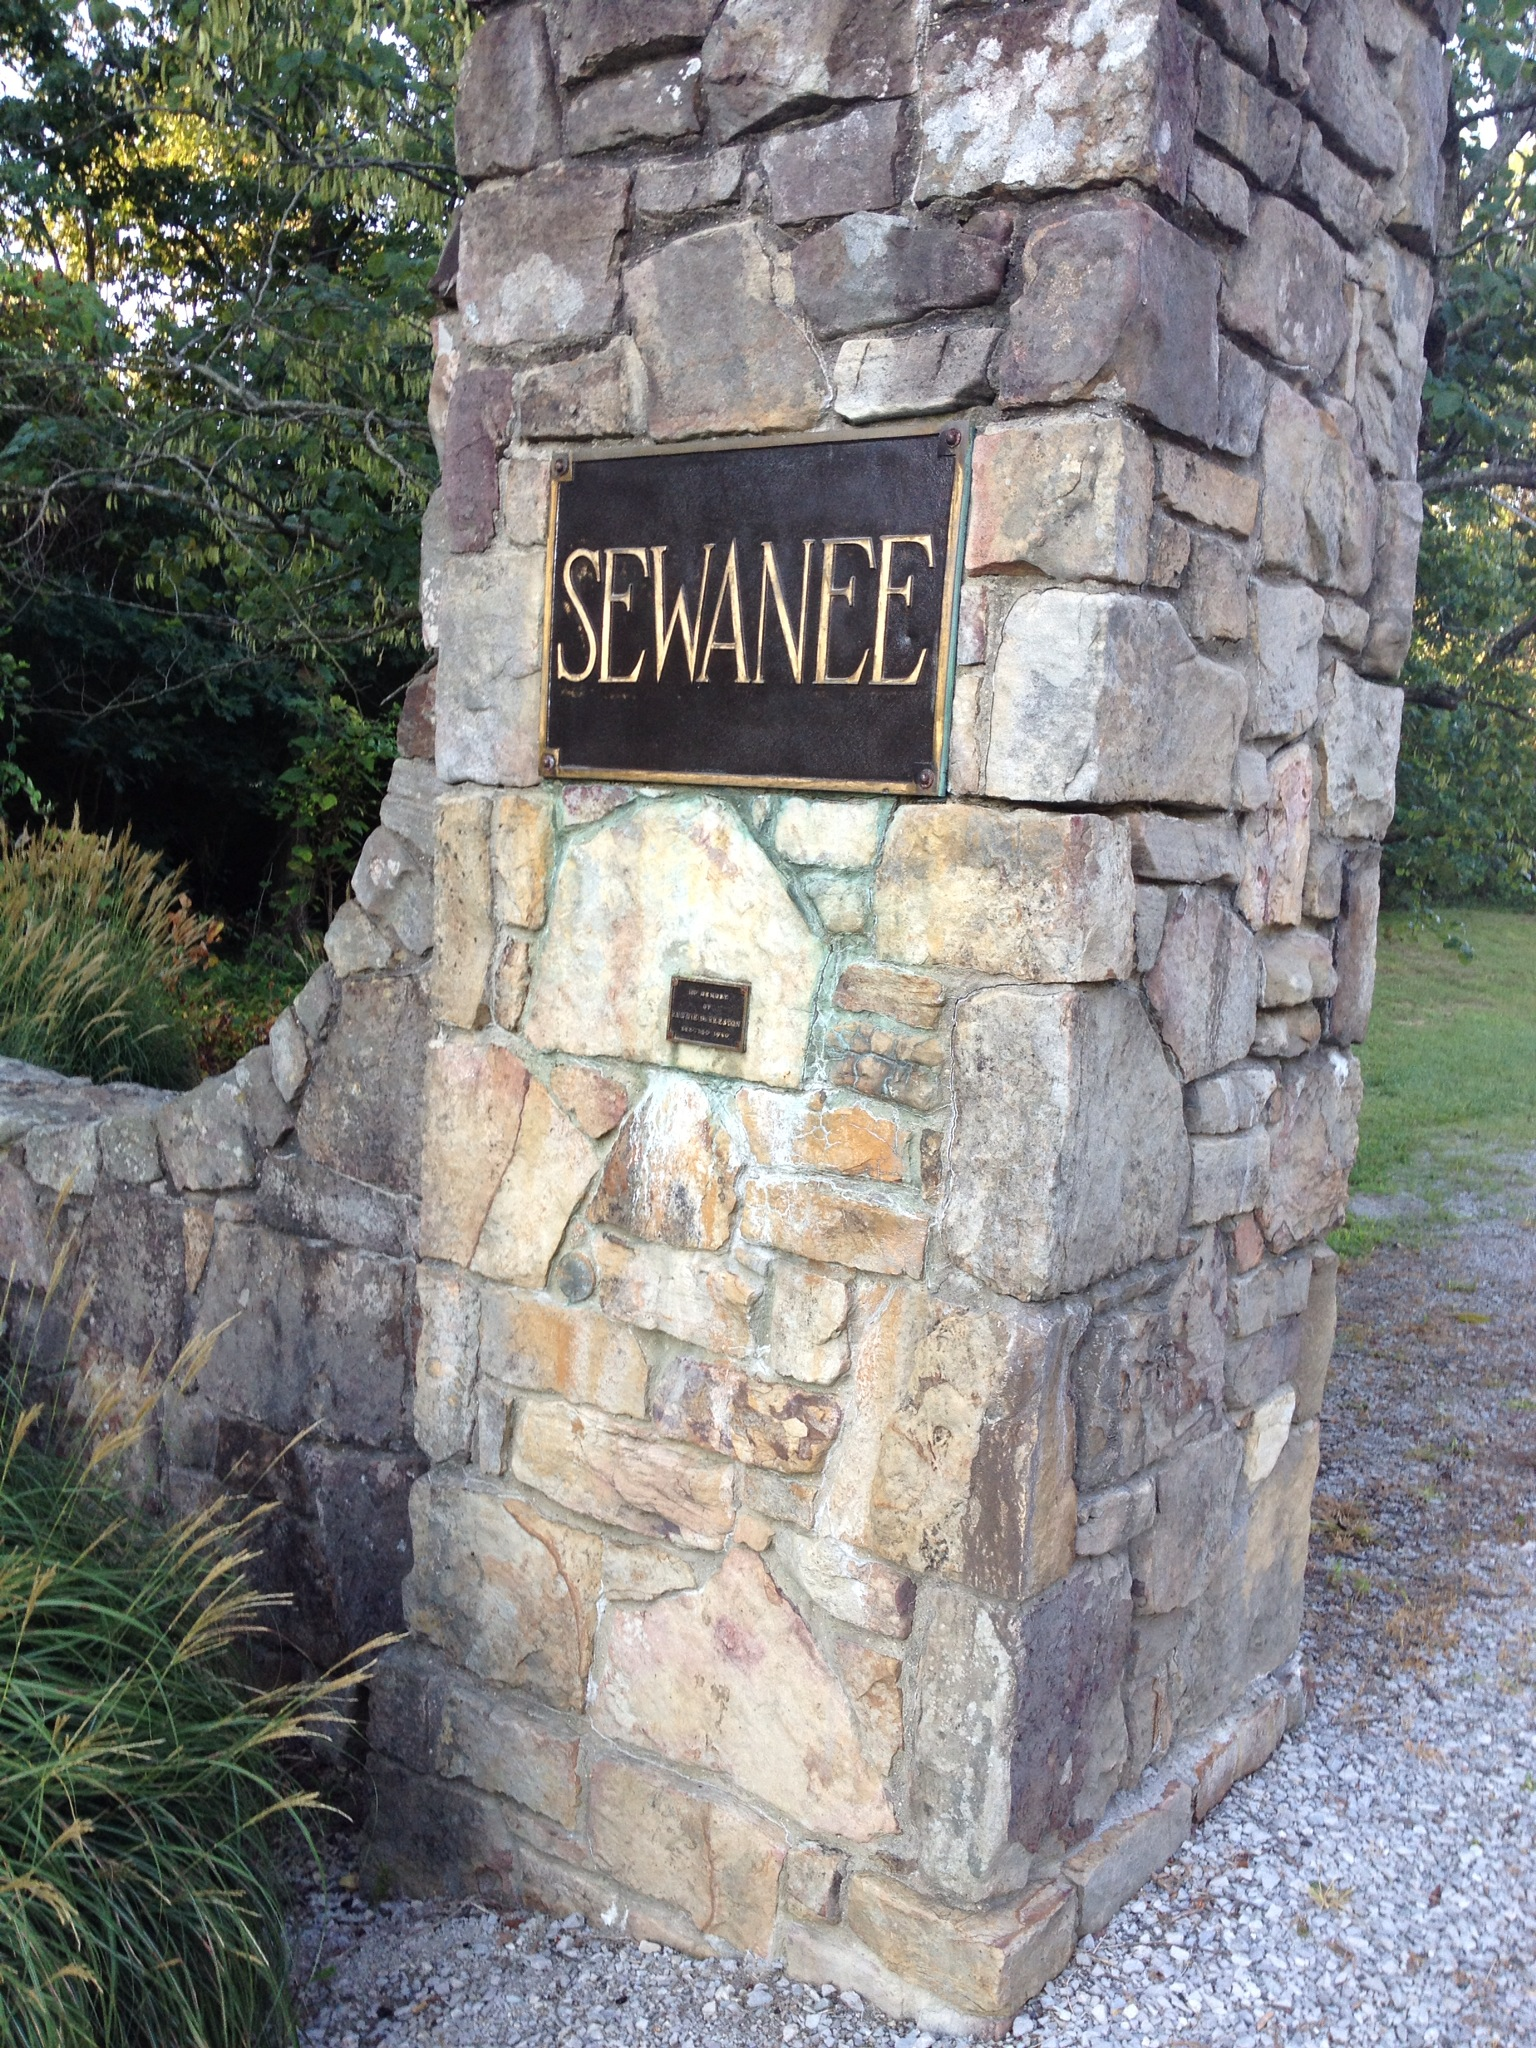 The entrance to the campus of Sewanee of the South